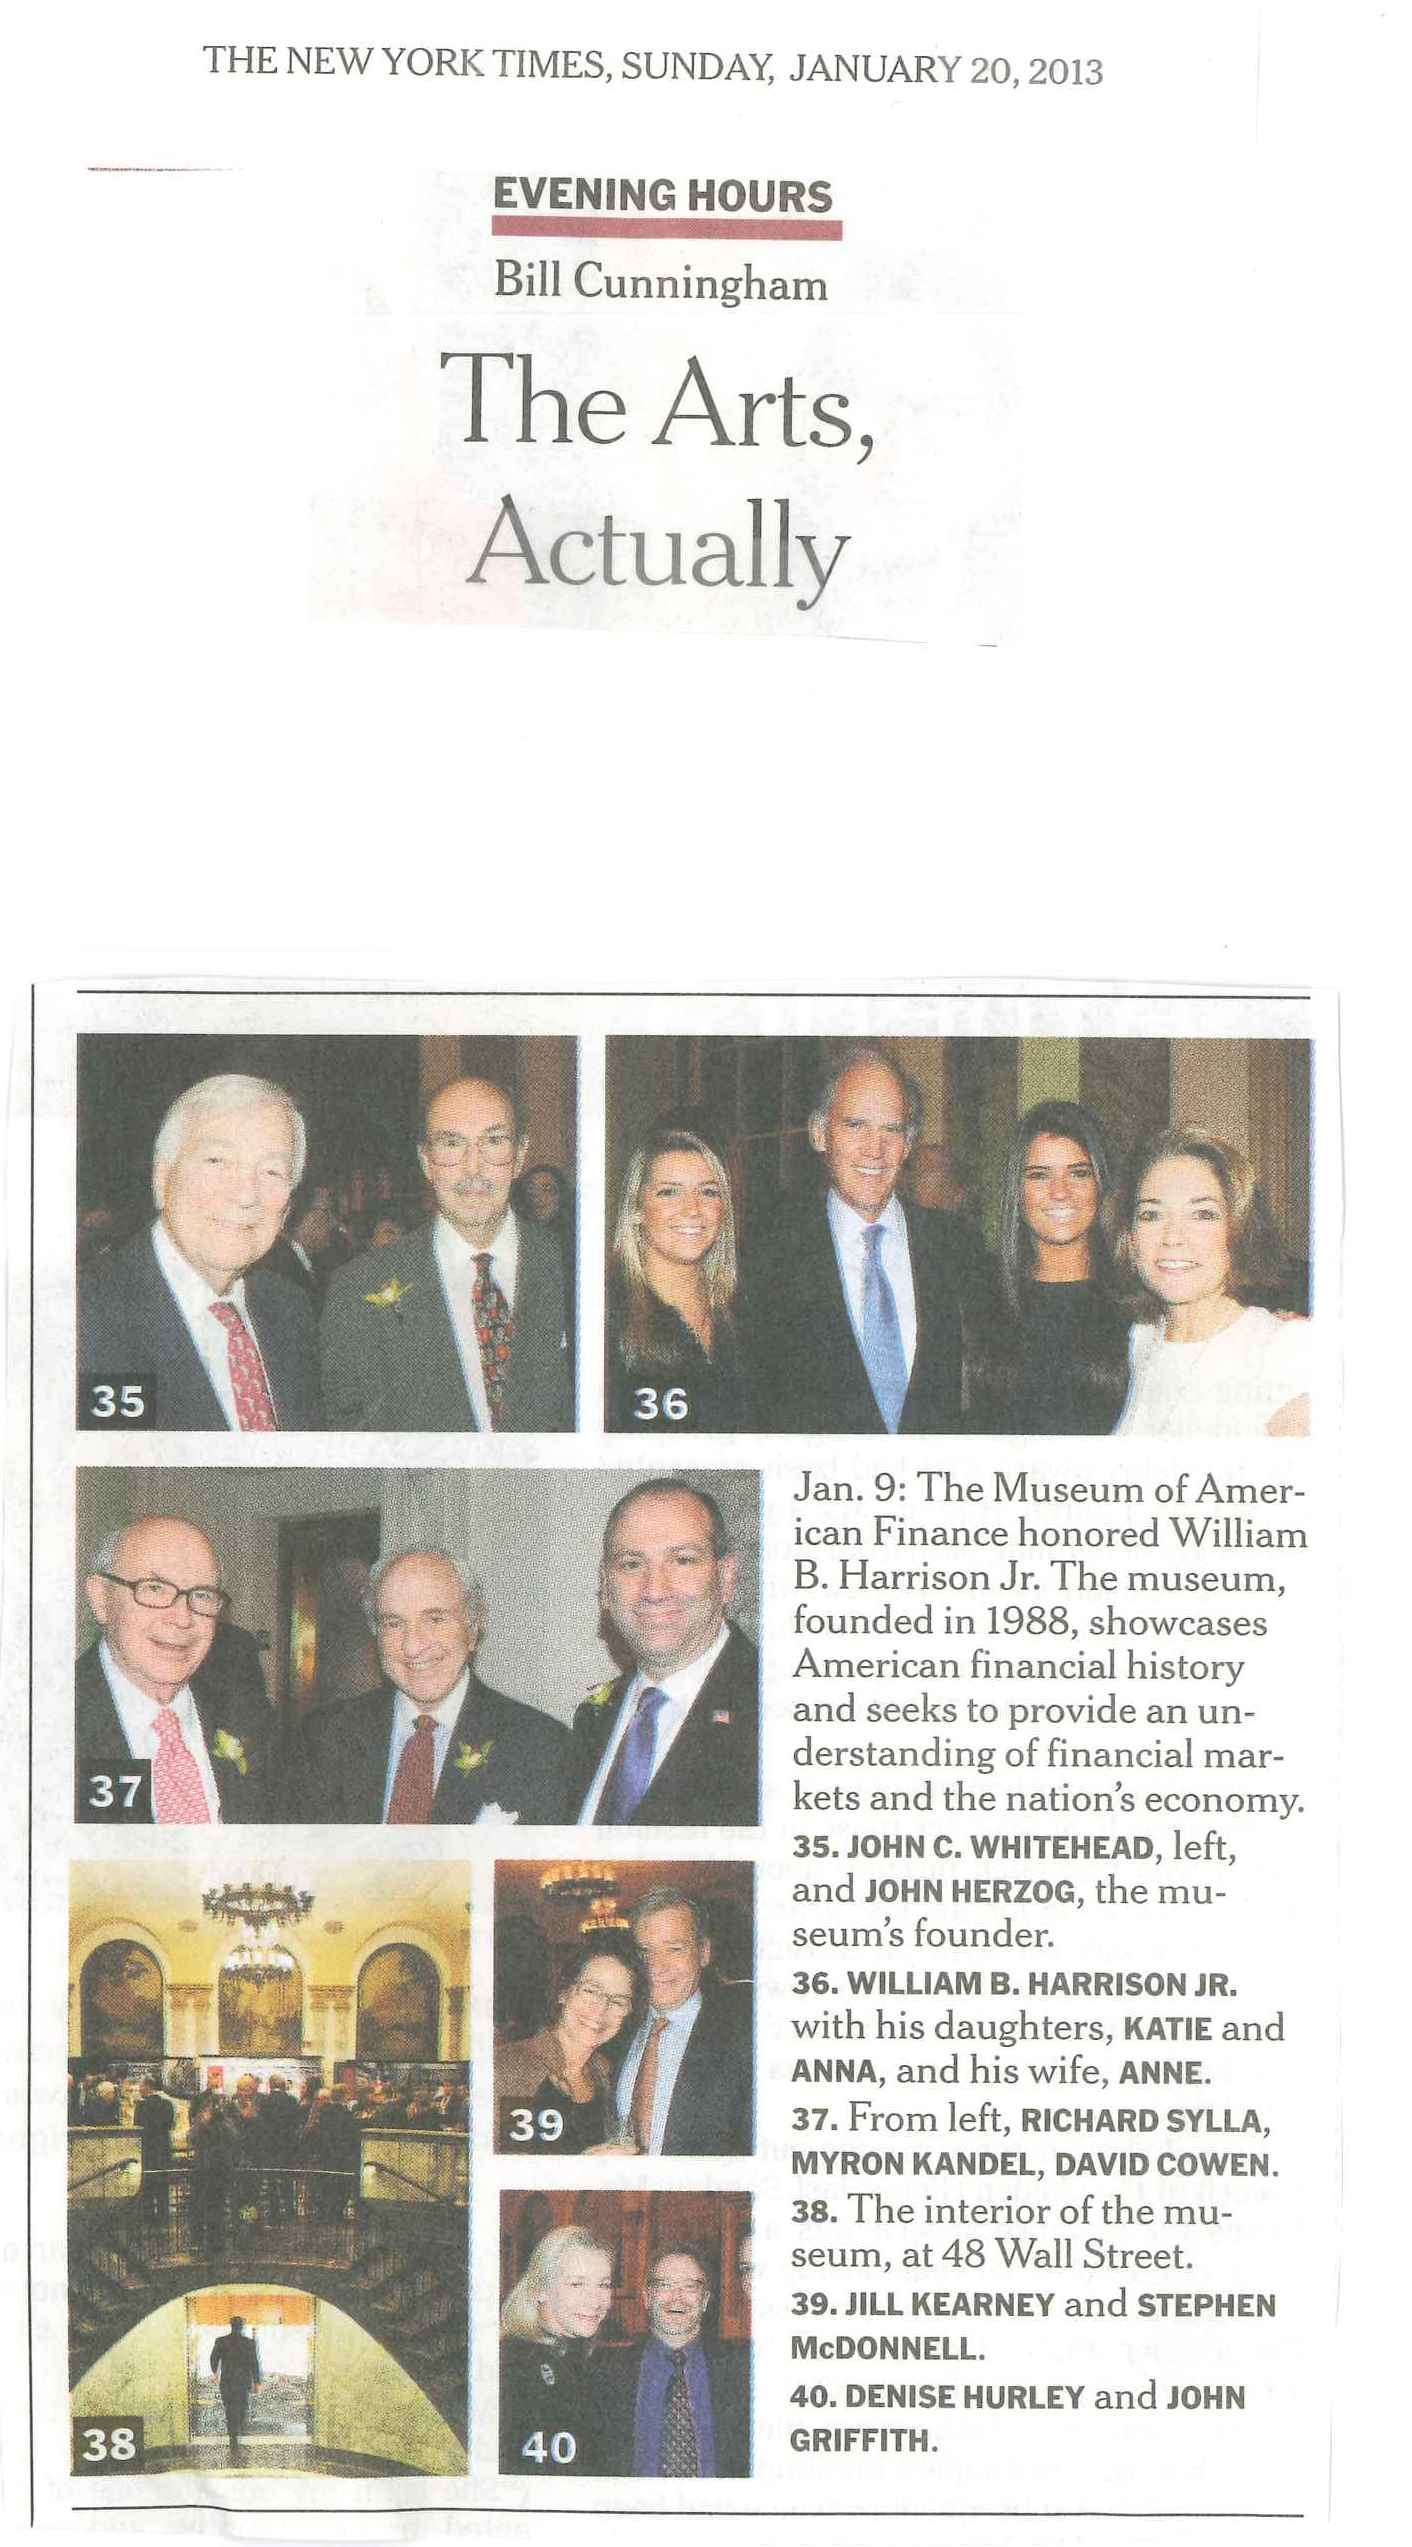 MoAF Gala Featured in NYT Sunday Style